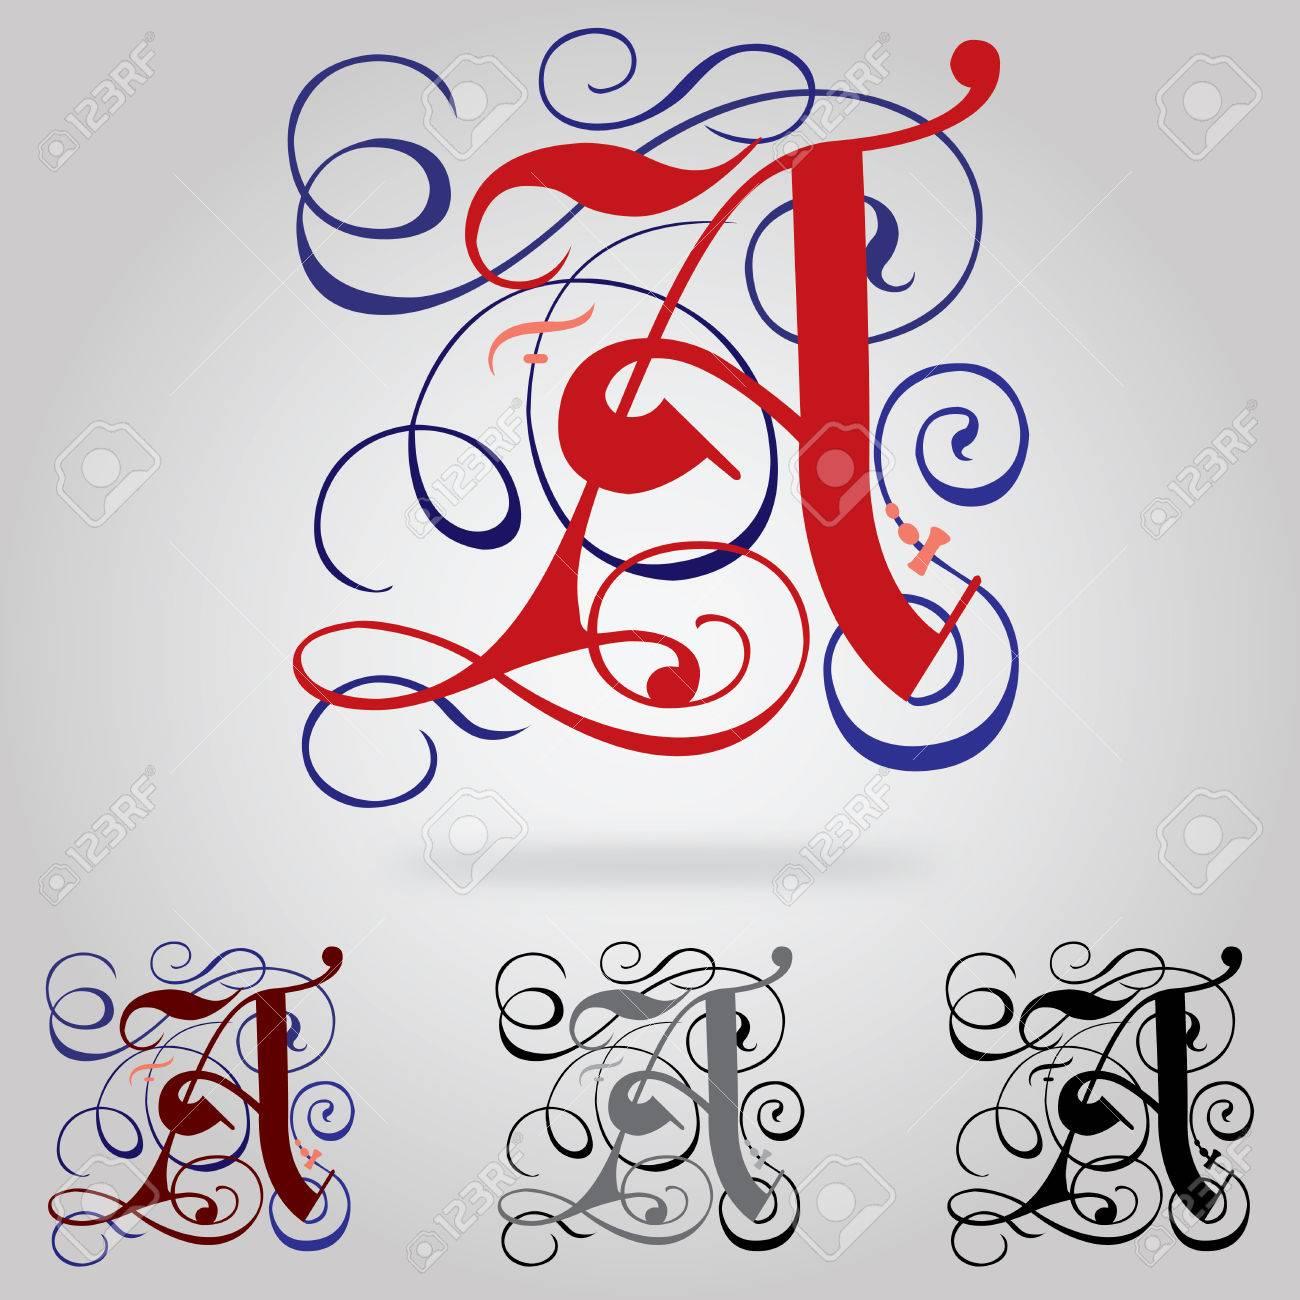 Decorated Uppercase Gothic Font